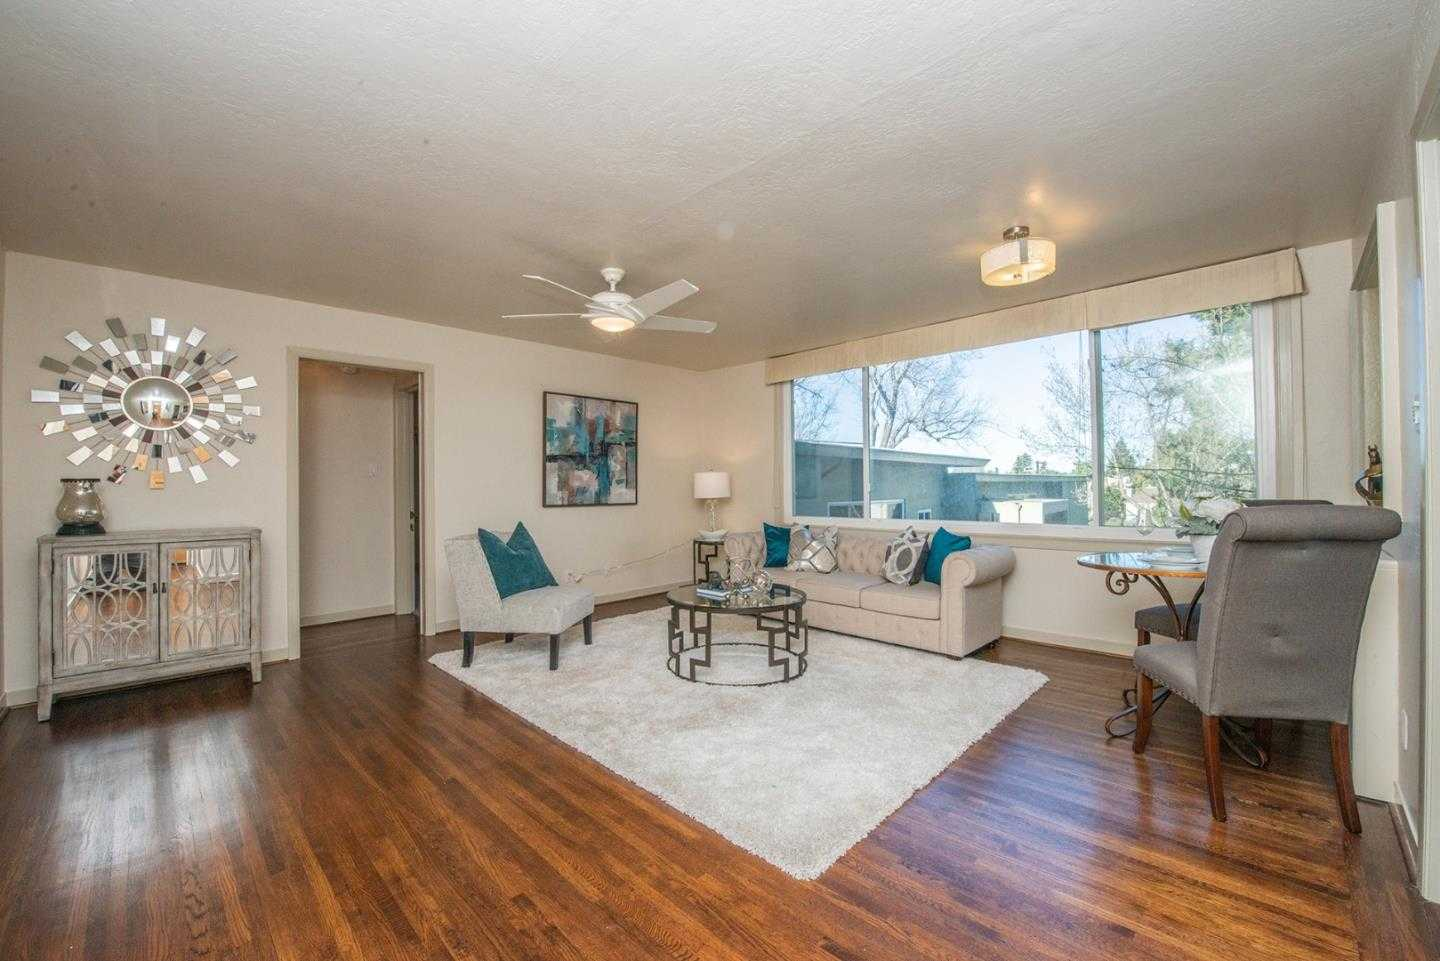 $529,000 - 1Br/1Ba -  for Sale in San Mateo